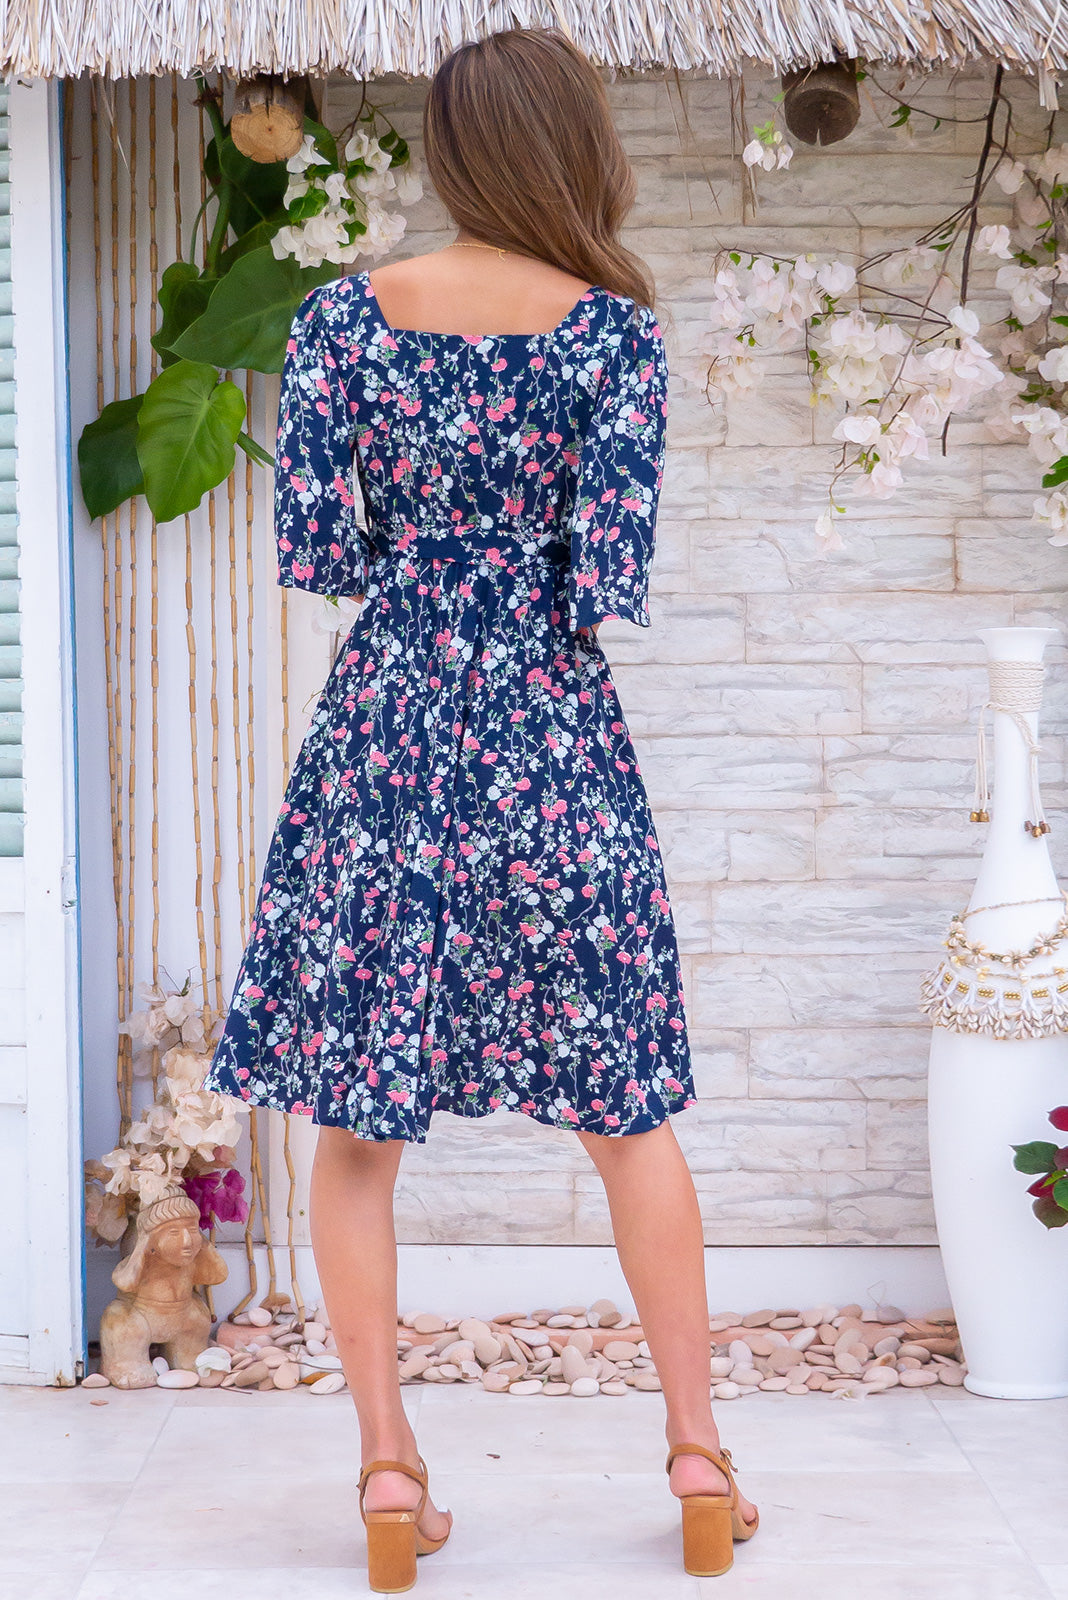 Canterbury Winsome Navy Dress milkmaid vintage retro inspired bohemian navy floral knee length dress with pockets made in rayon.